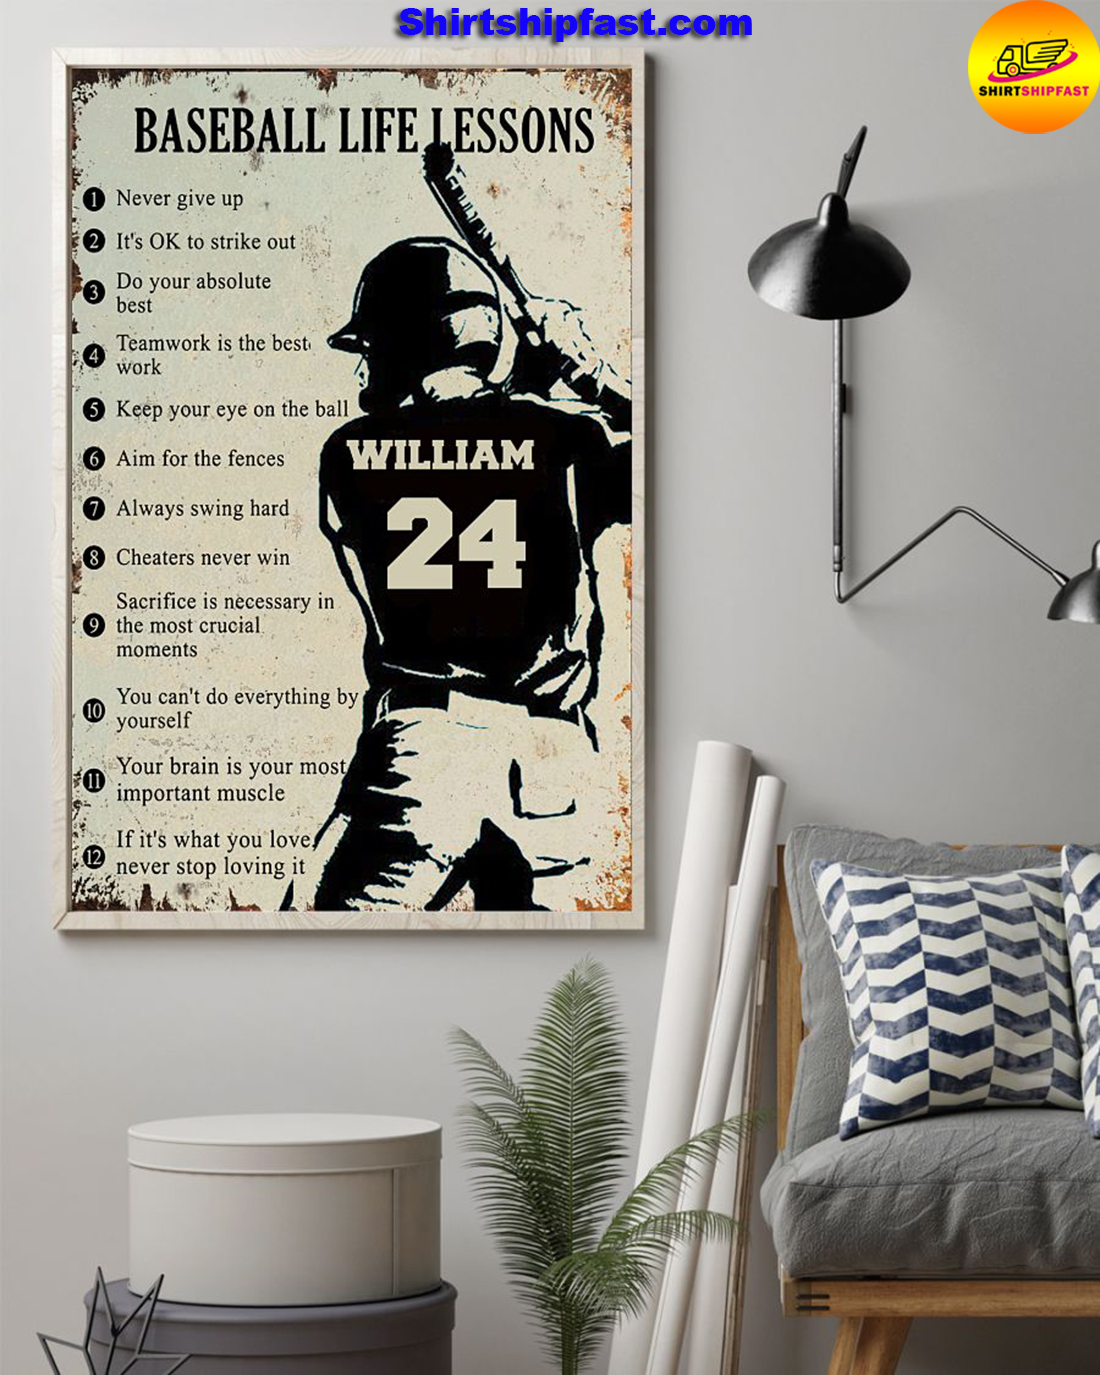 Personalize custom name number Baseball life lessons poster